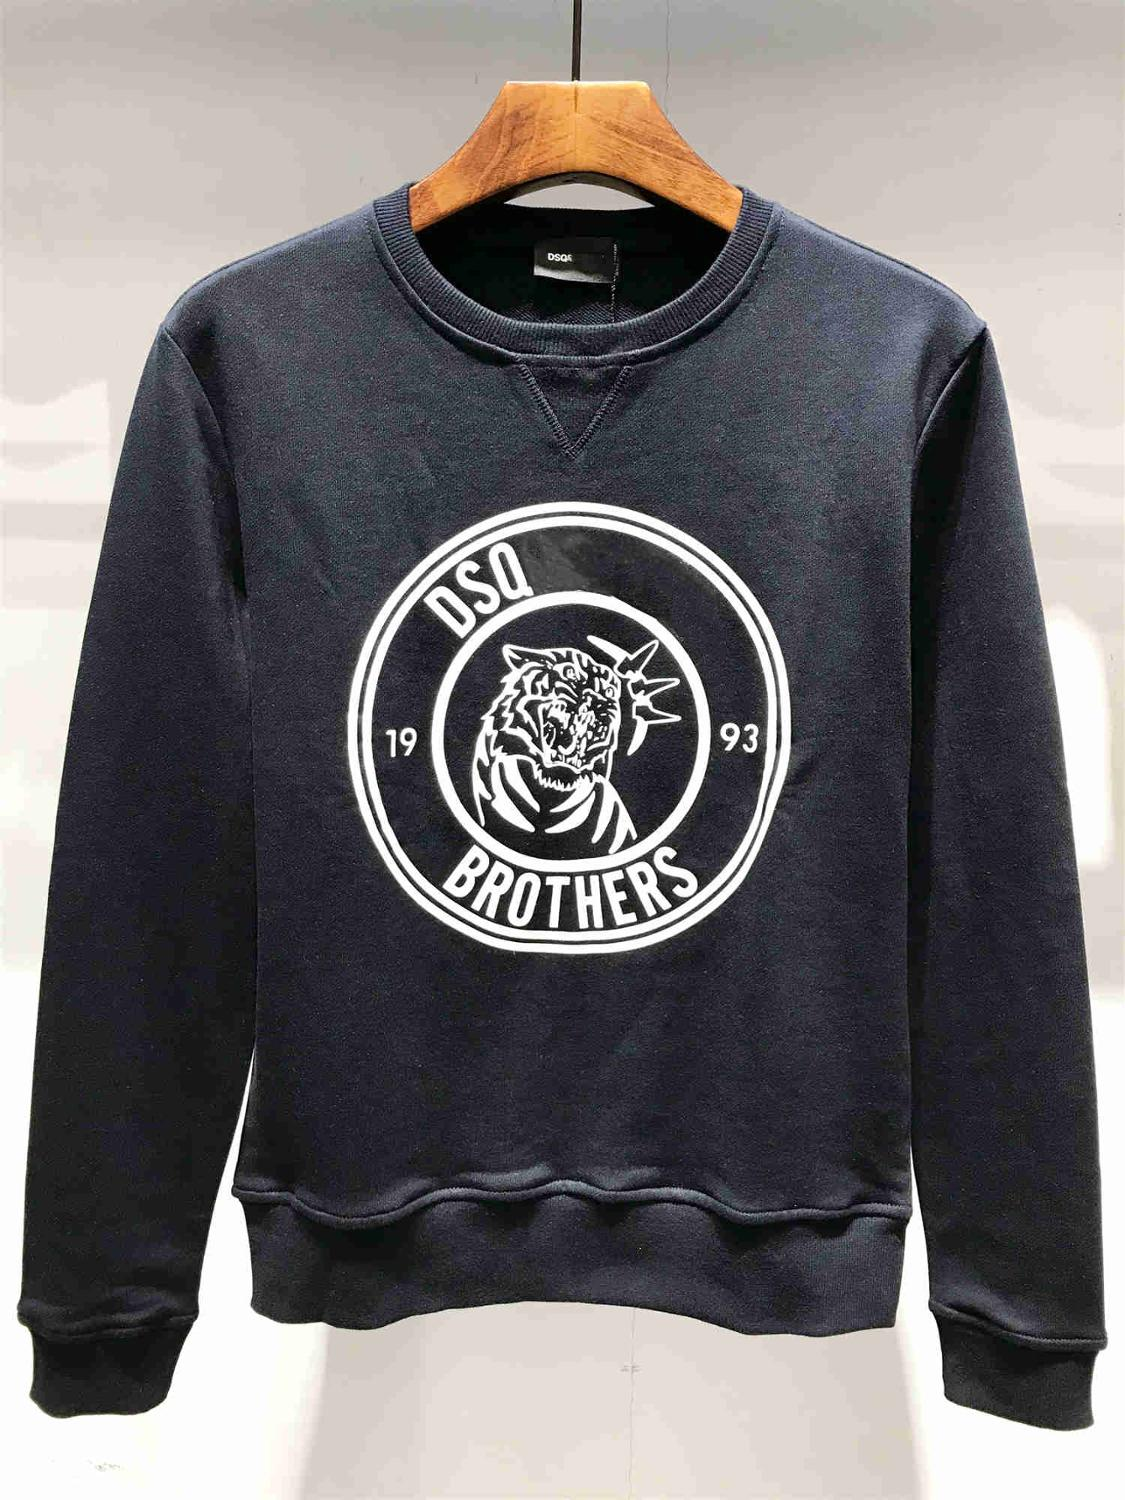 NEW Men's 2019 Spring Autumn Dsq D2 Sweatshirts Men's Sweatshirt Tops 1 Order